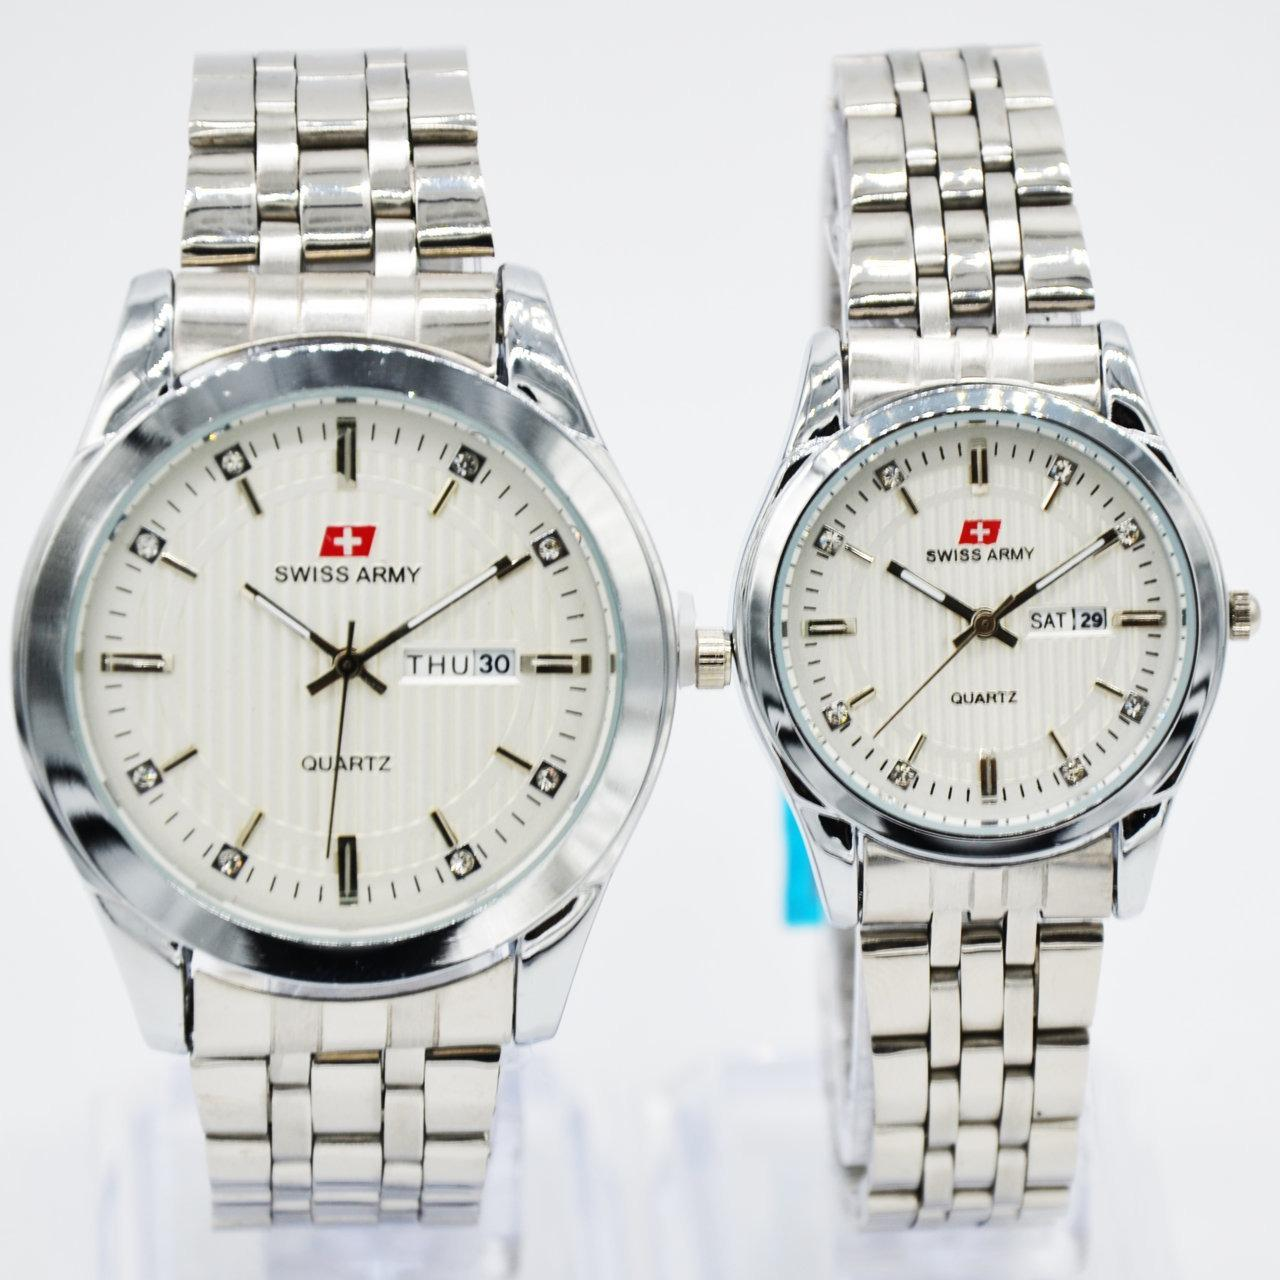 Swiss Army New Arrival - Jam Tangan Couple - Stainless Steel SA-4124 silver 80014d7e9f